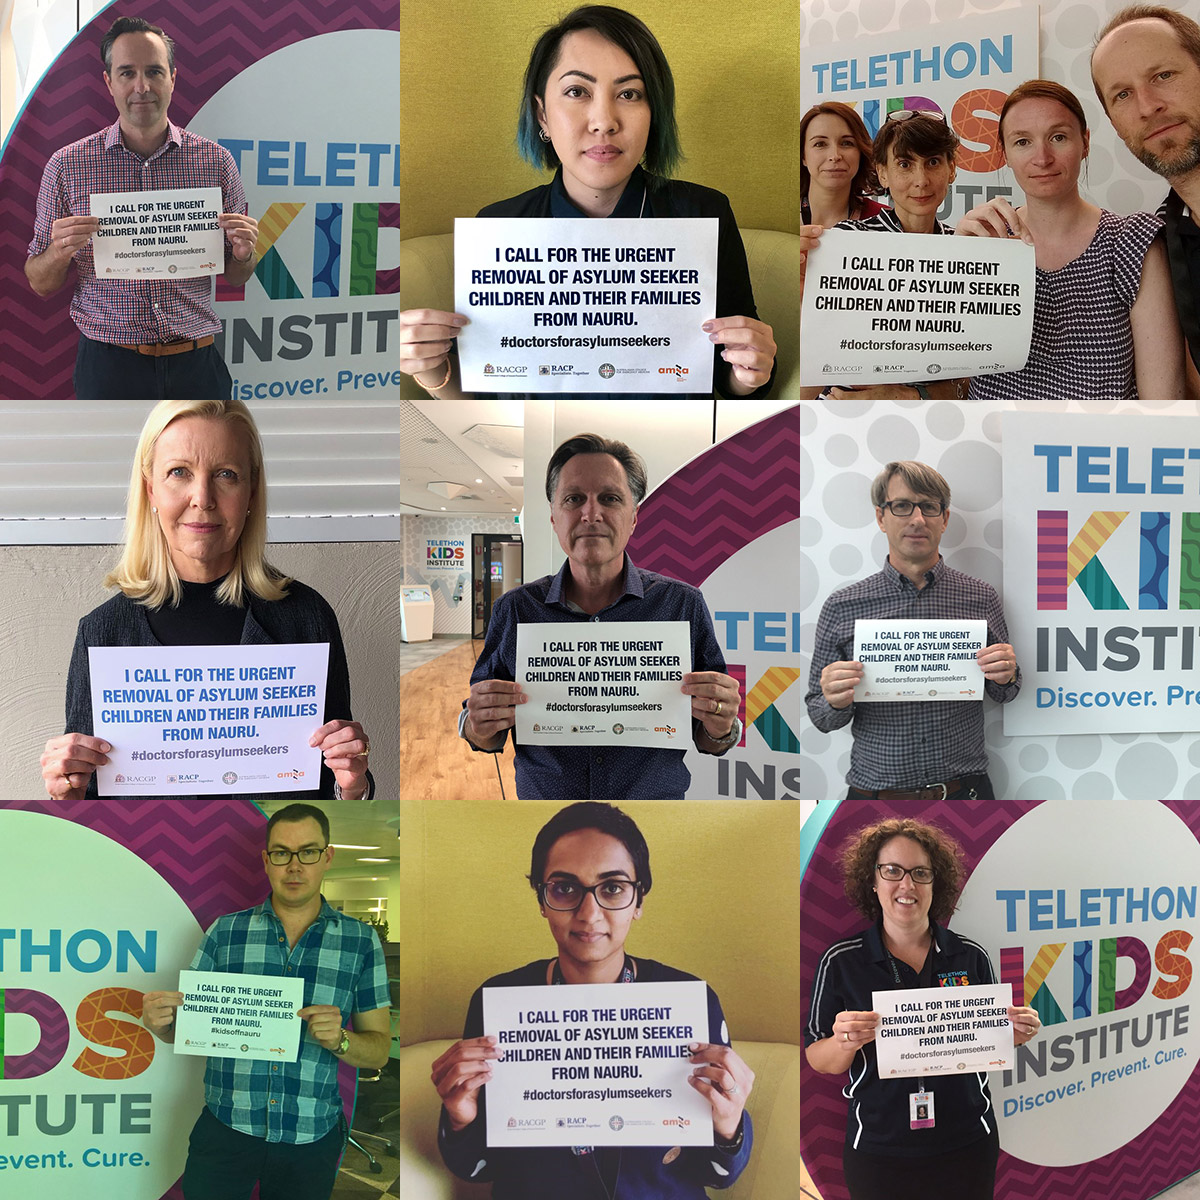 Telethon Kids calls for urgent removal of kids on Nauru